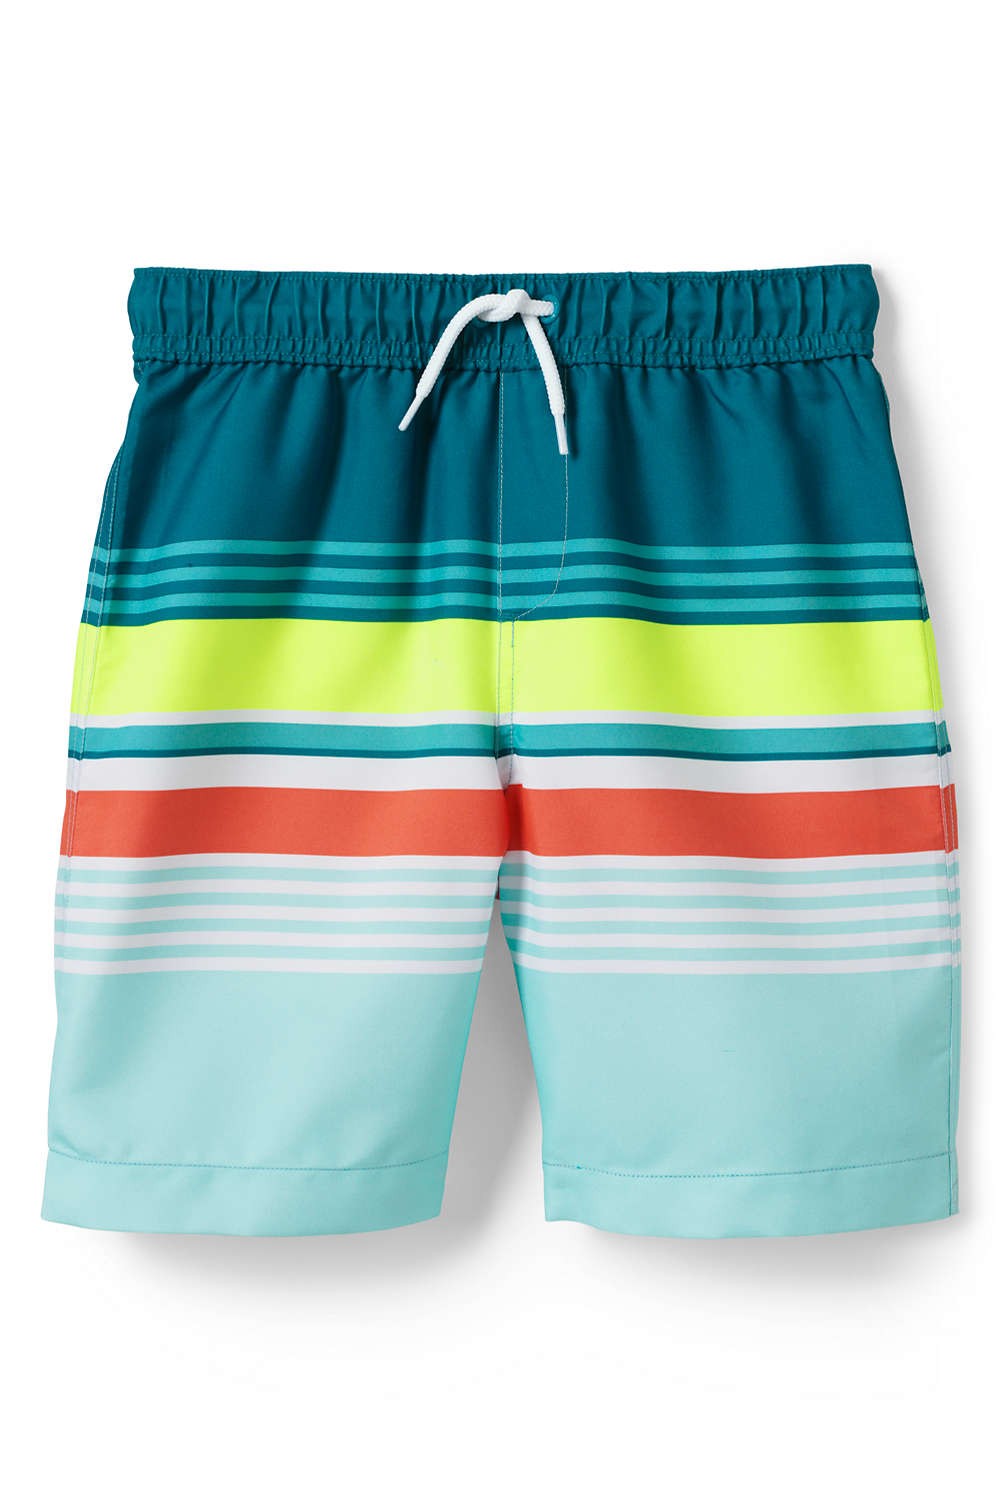 610c46433ed4c Boys Print Swim Trunk from Lands' End